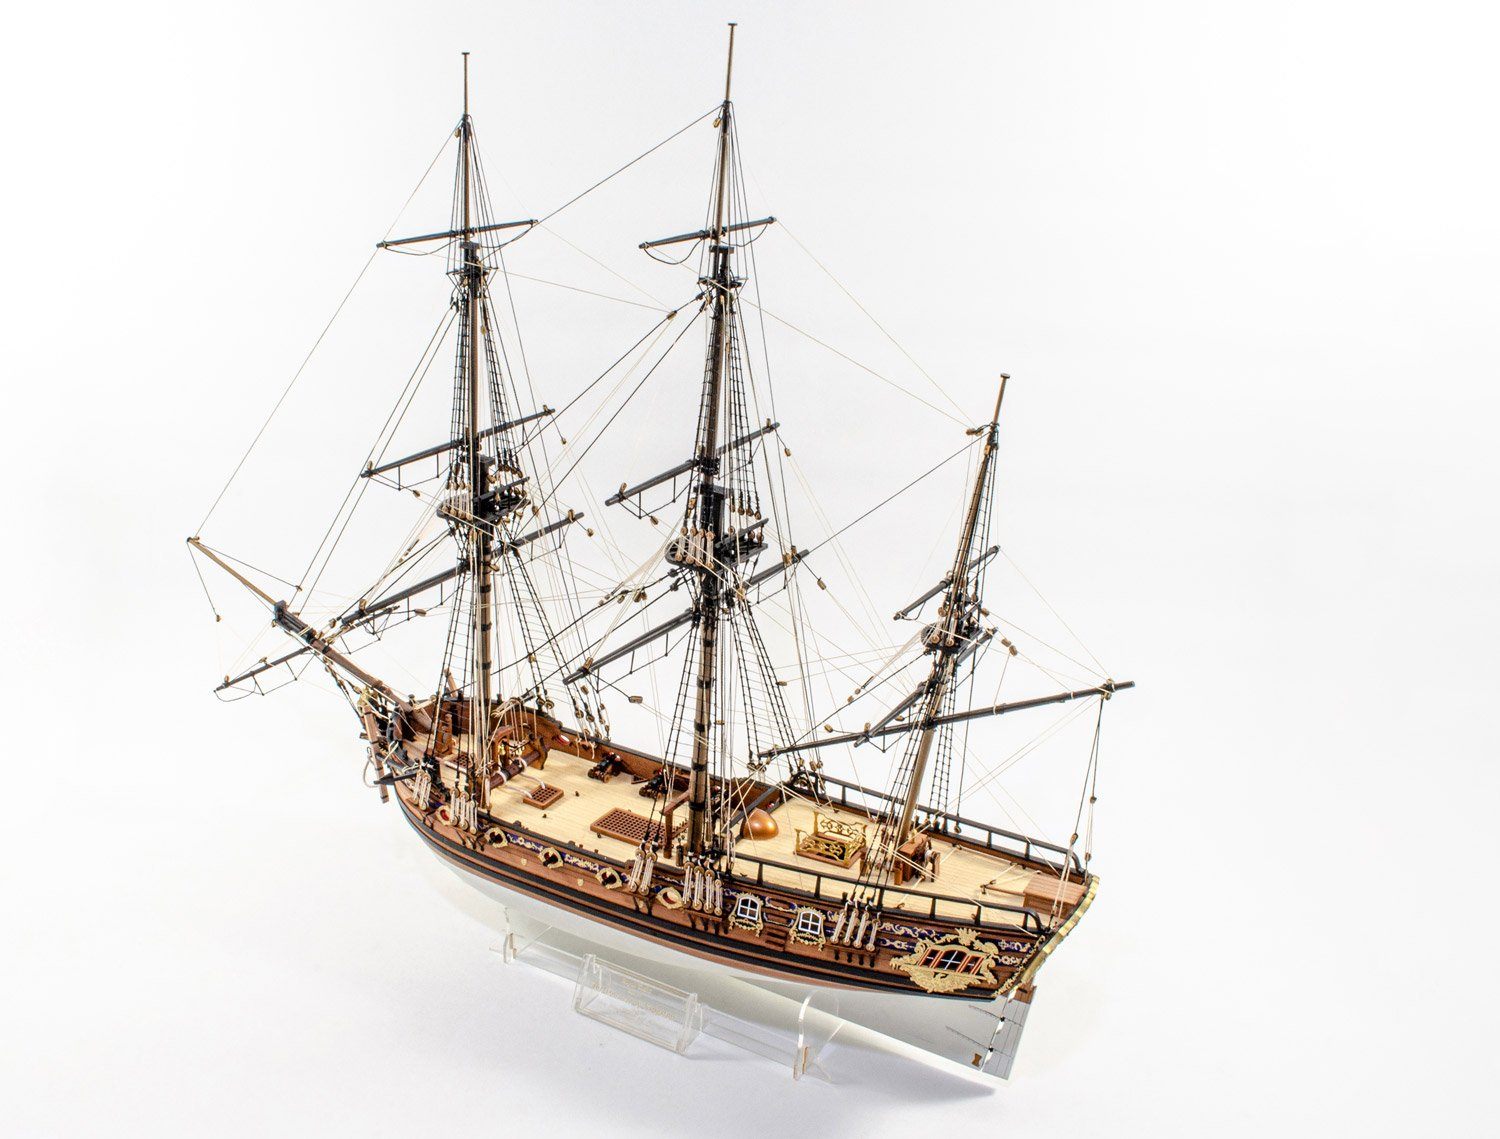 Duchess of Kingston by James H - 1:64 - Vanguard Models